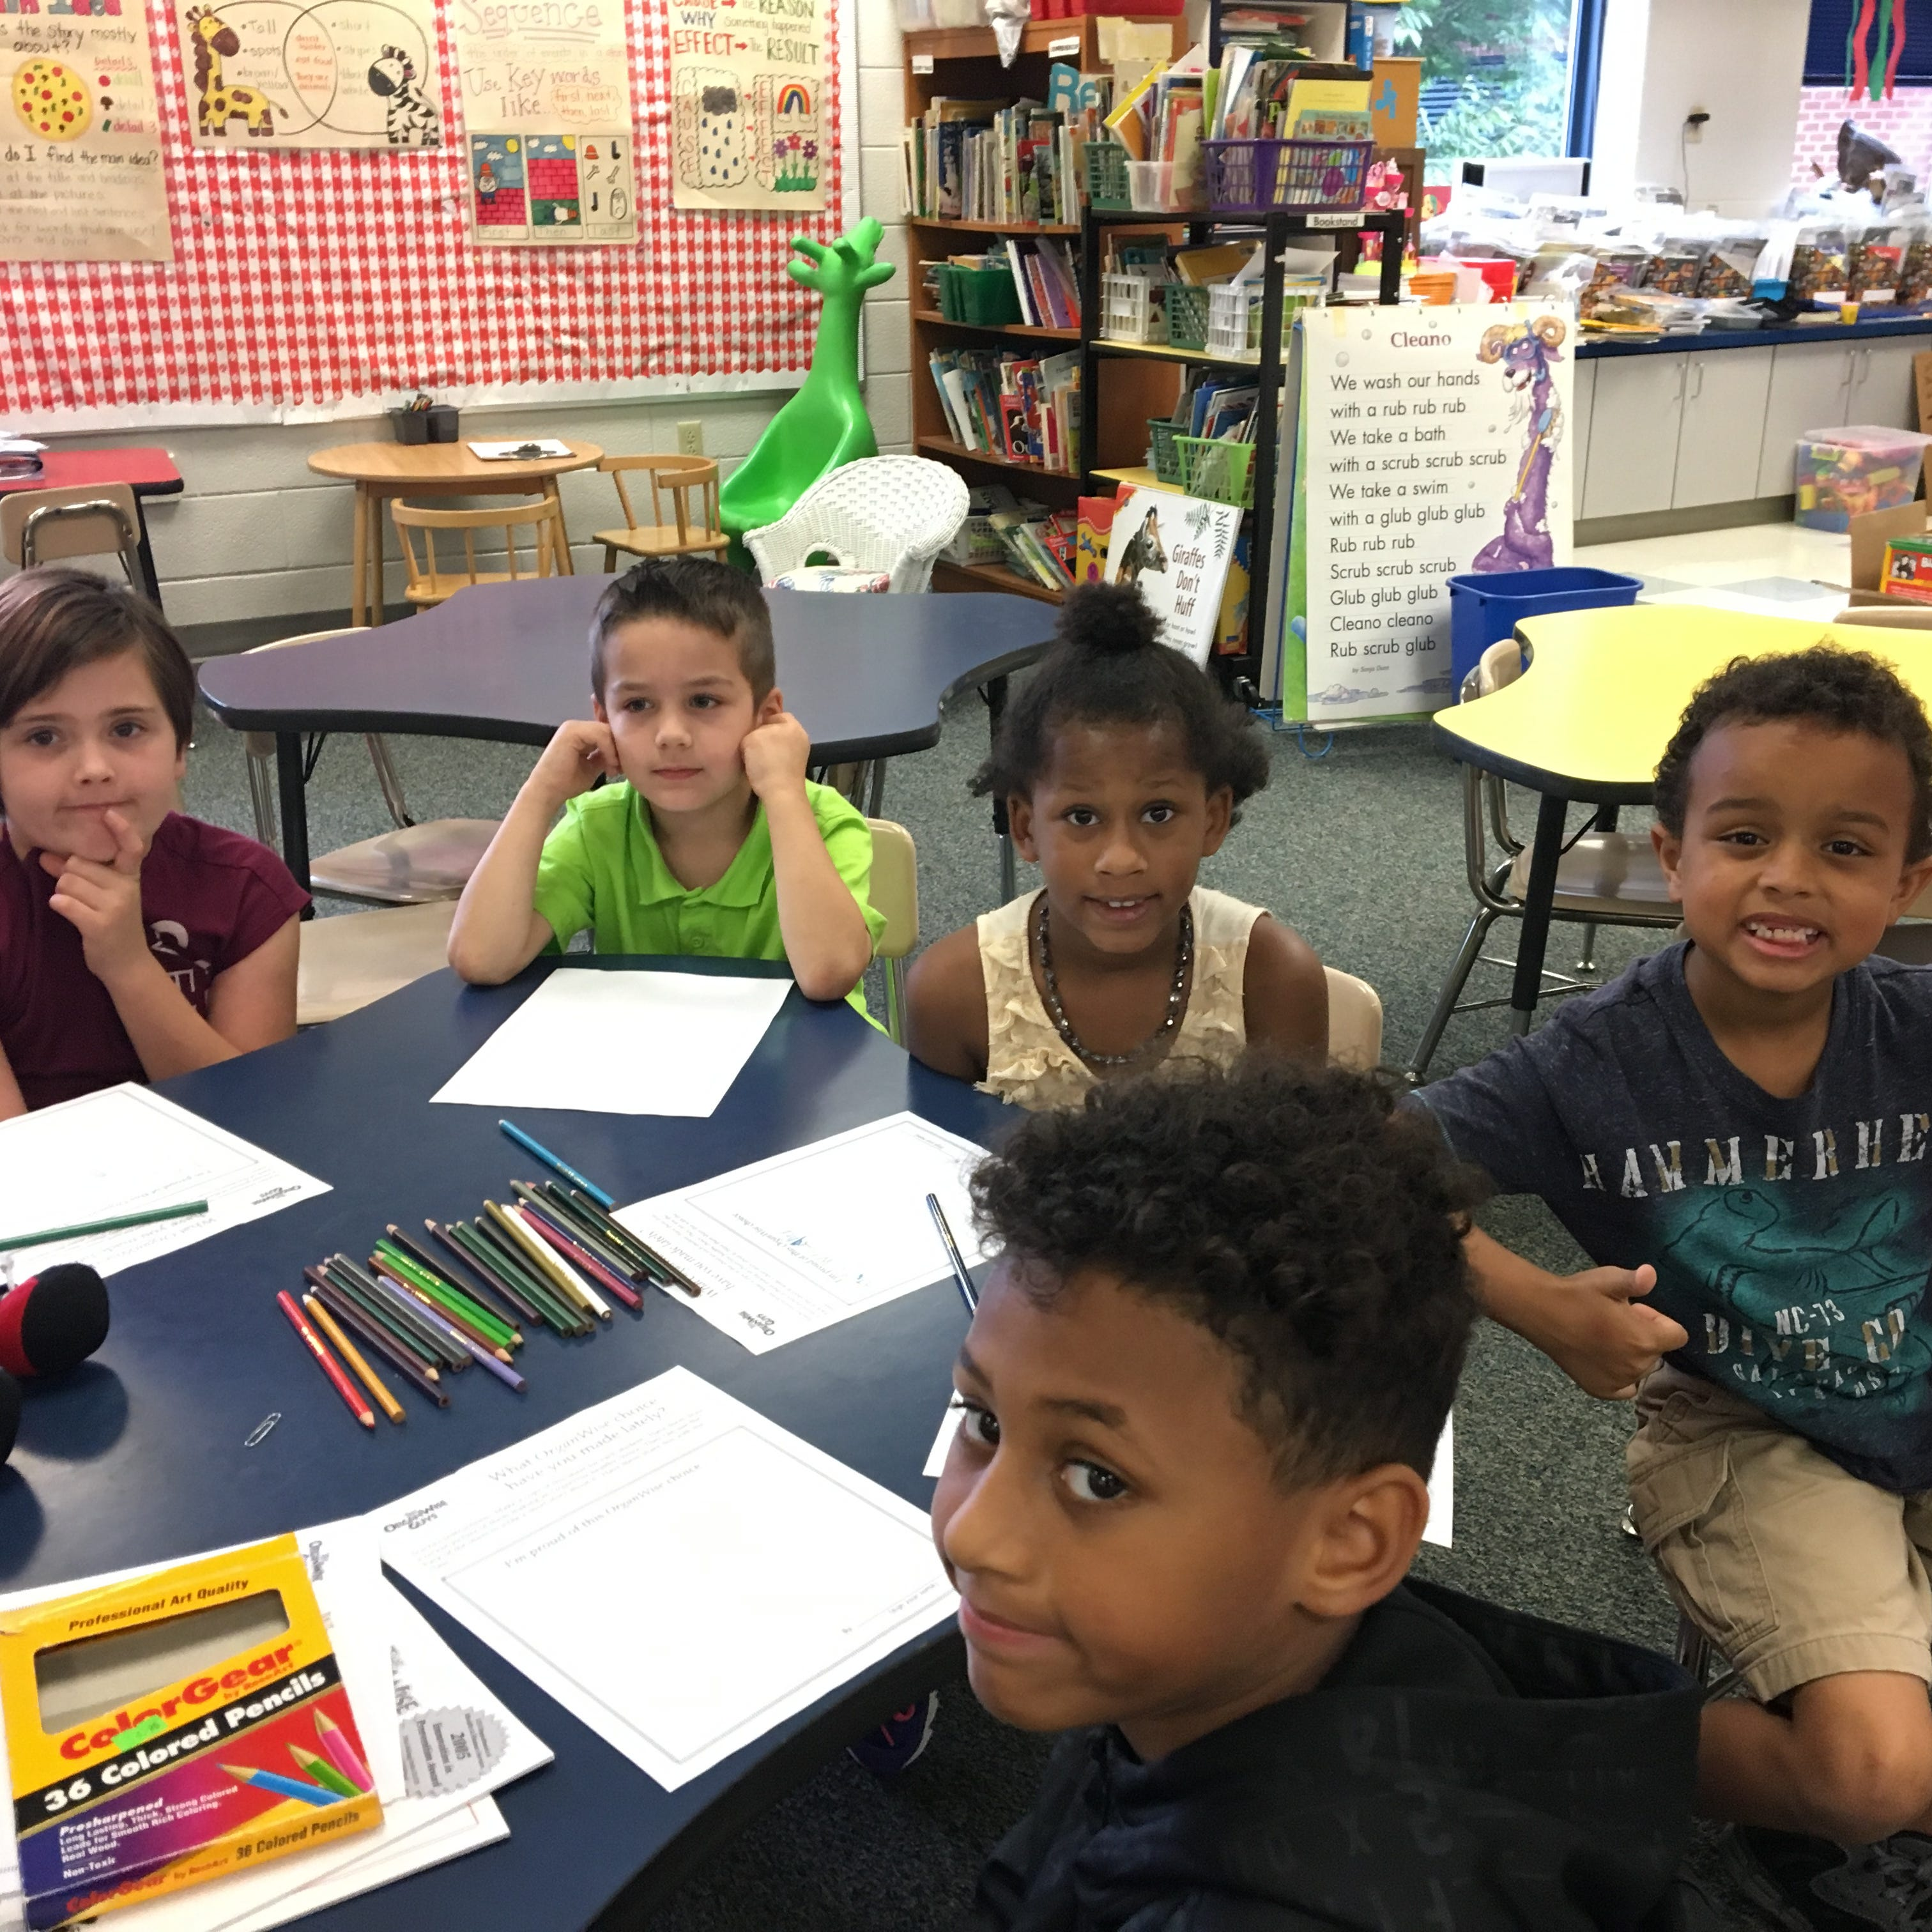 Get Fresh teaches healthy eating at William Perry Elementary